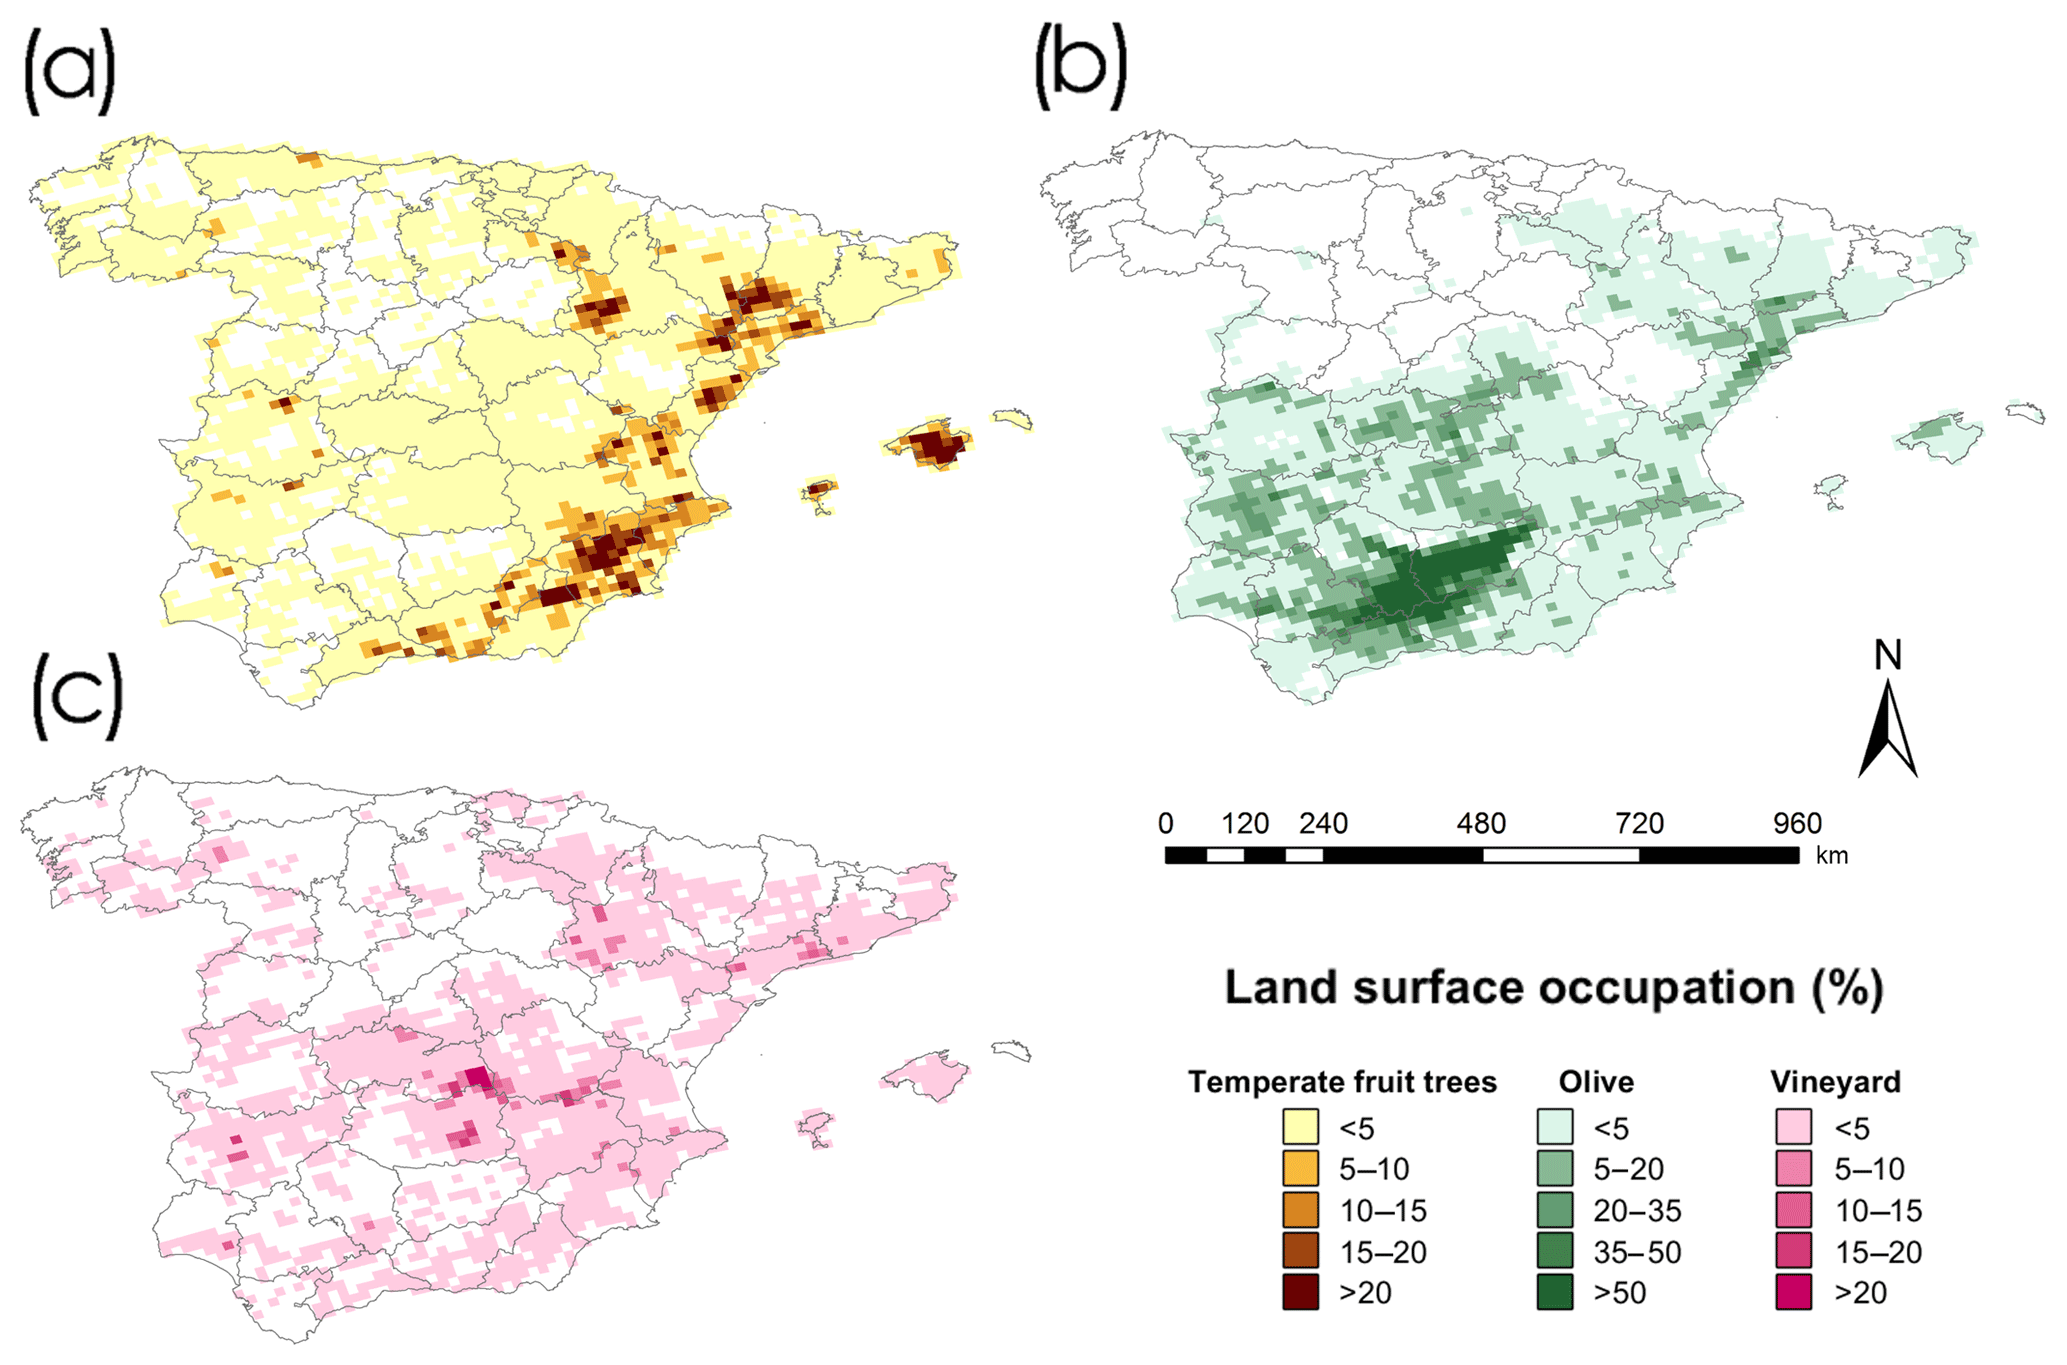 NHESS - Chilling accumulation in fruit trees in Spain under climate